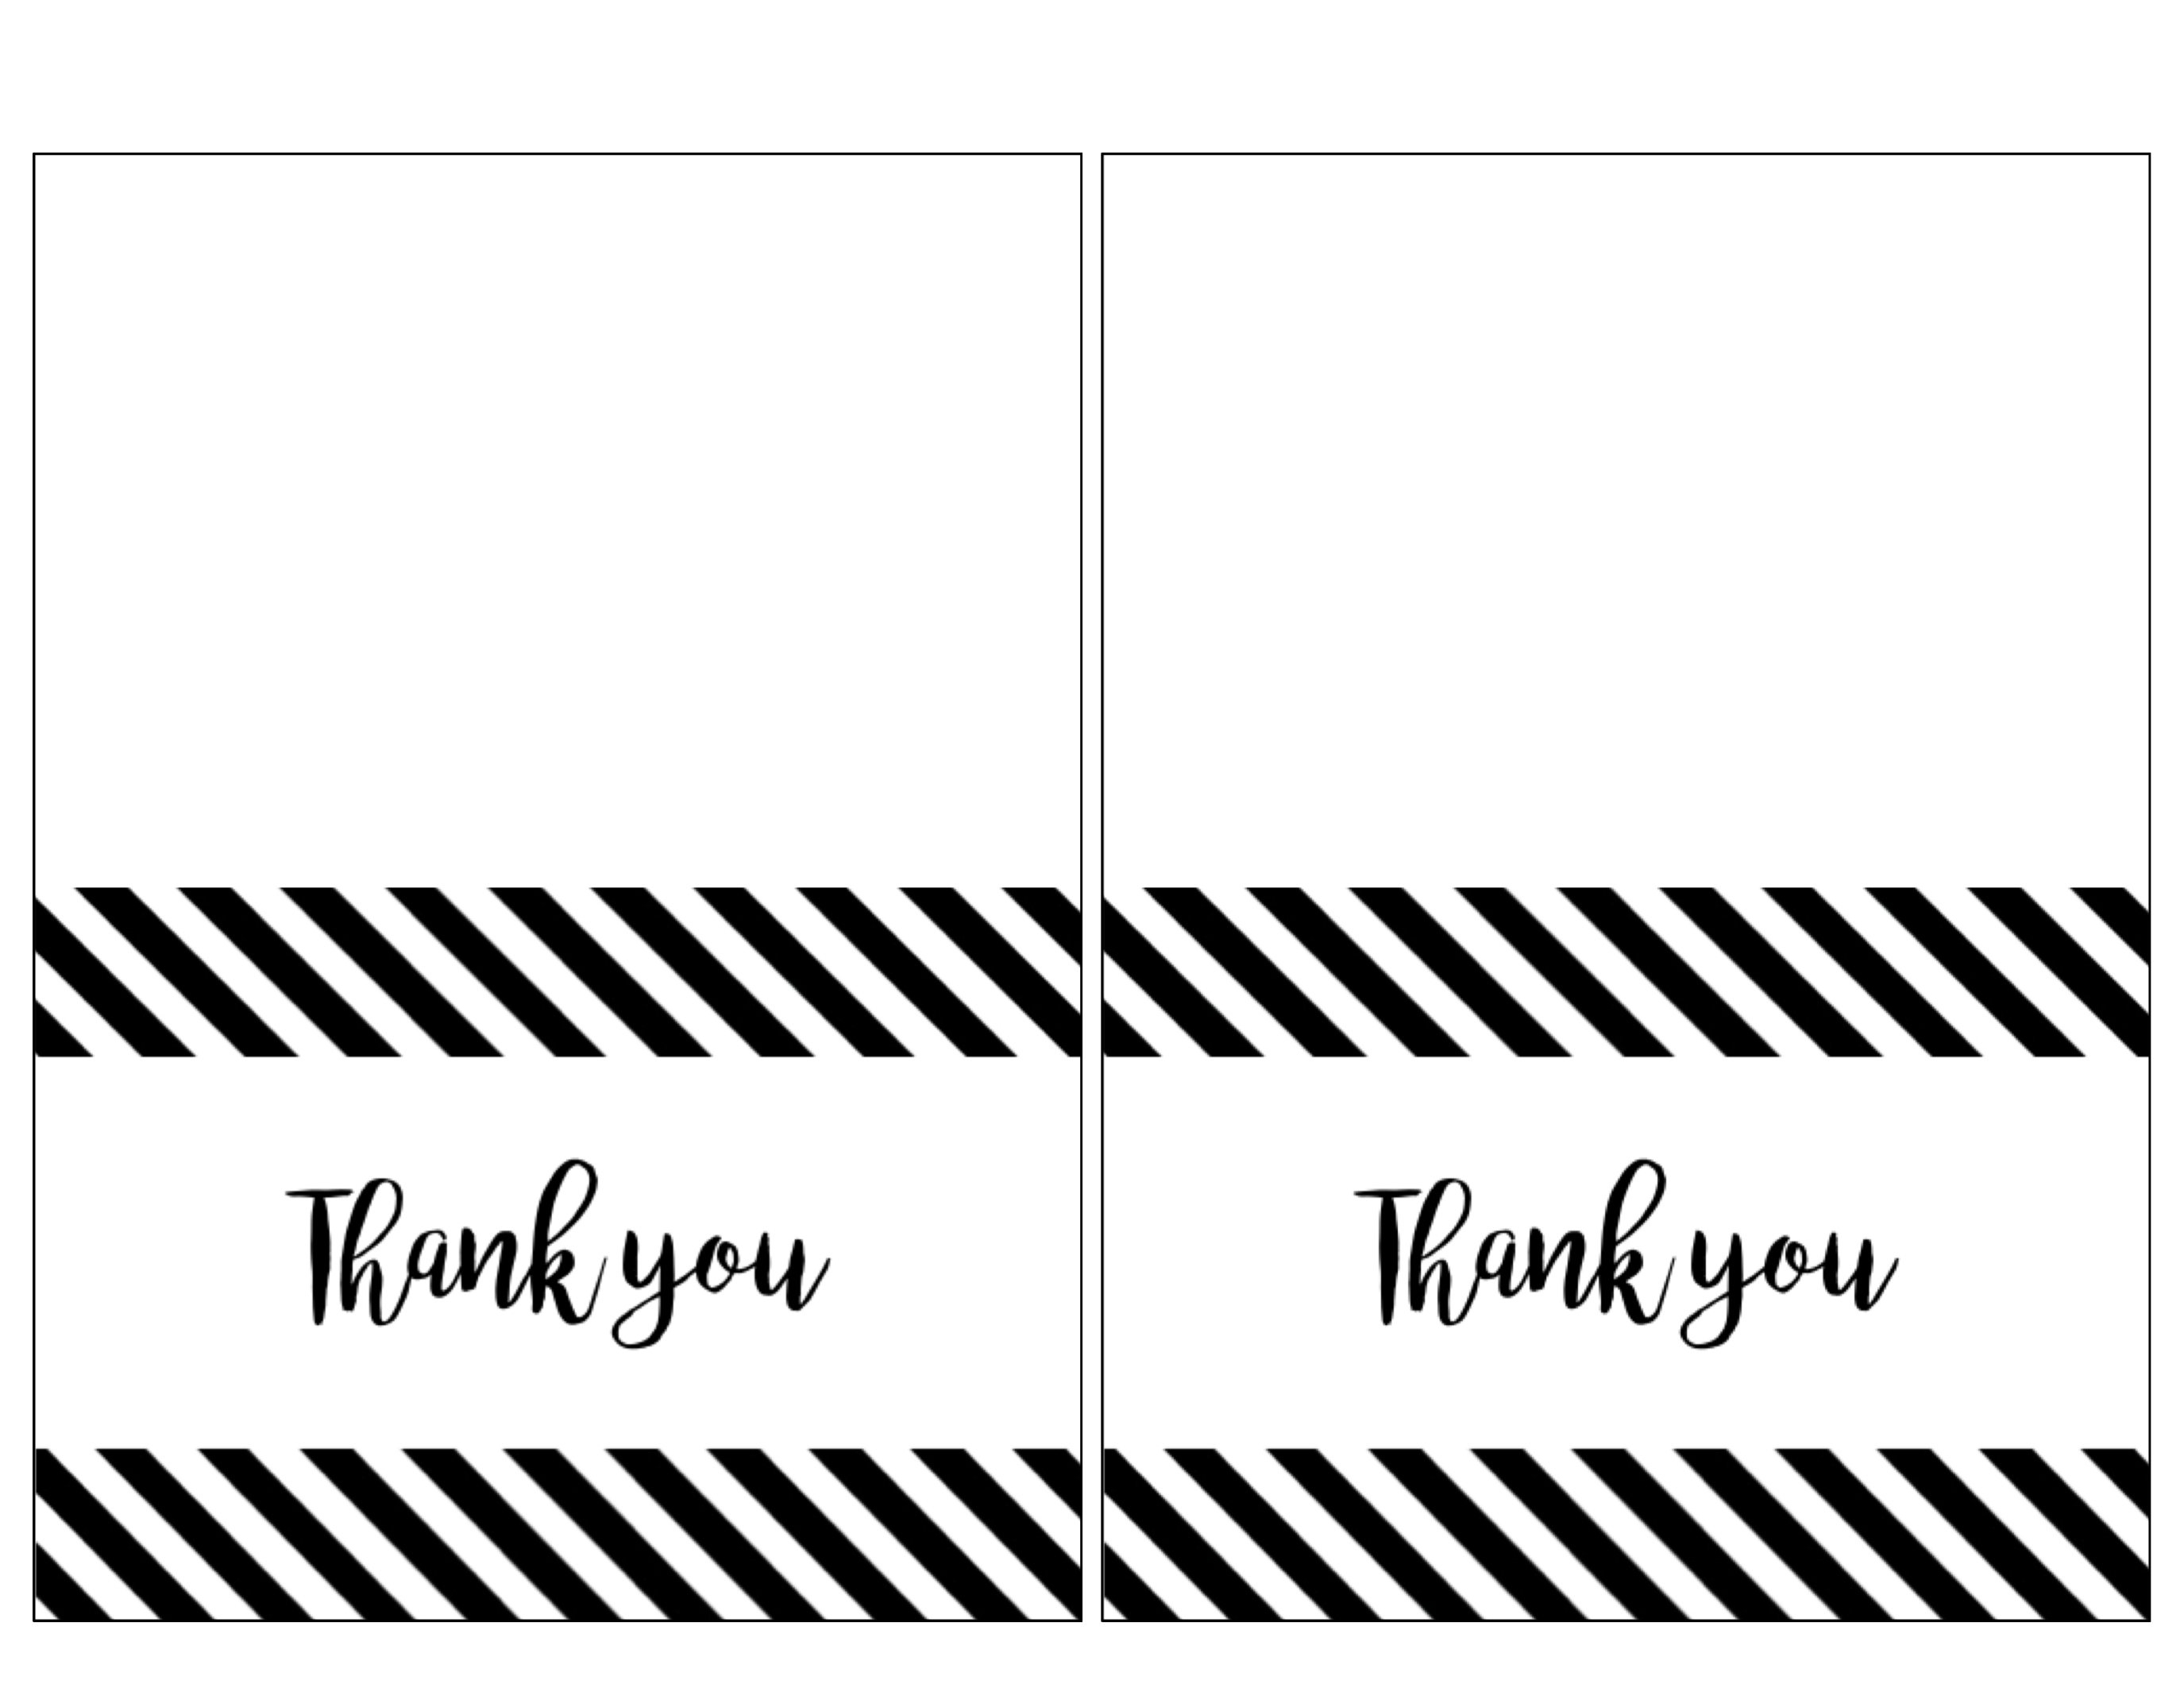 Print Thank You Cards | Beautynatura - Free Printable Thank You Cards